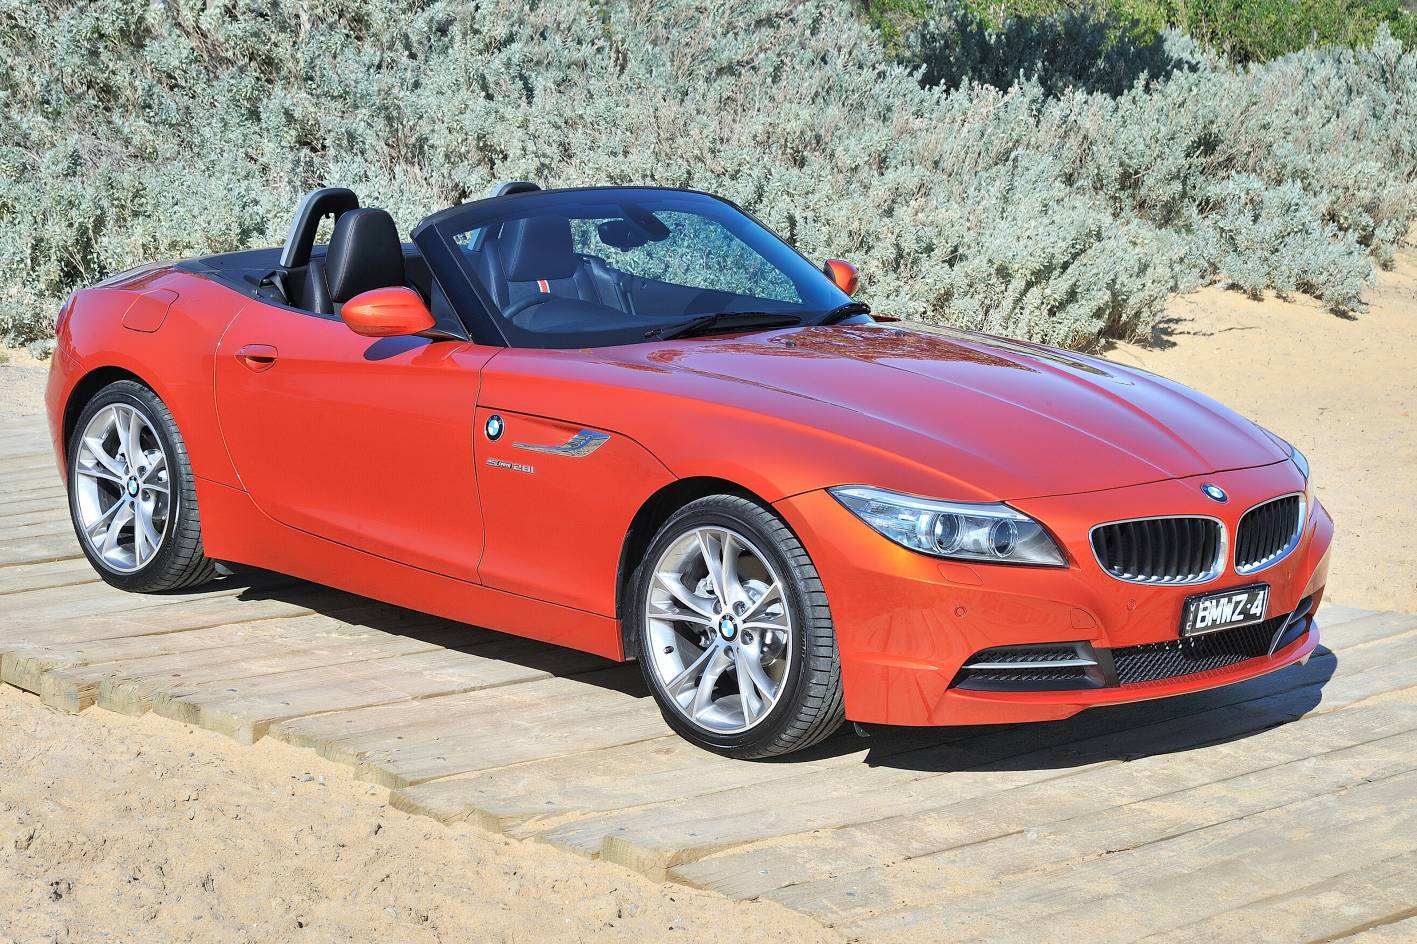 2013 bmw z4 pricing and specifications photos 1 of 7. Black Bedroom Furniture Sets. Home Design Ideas